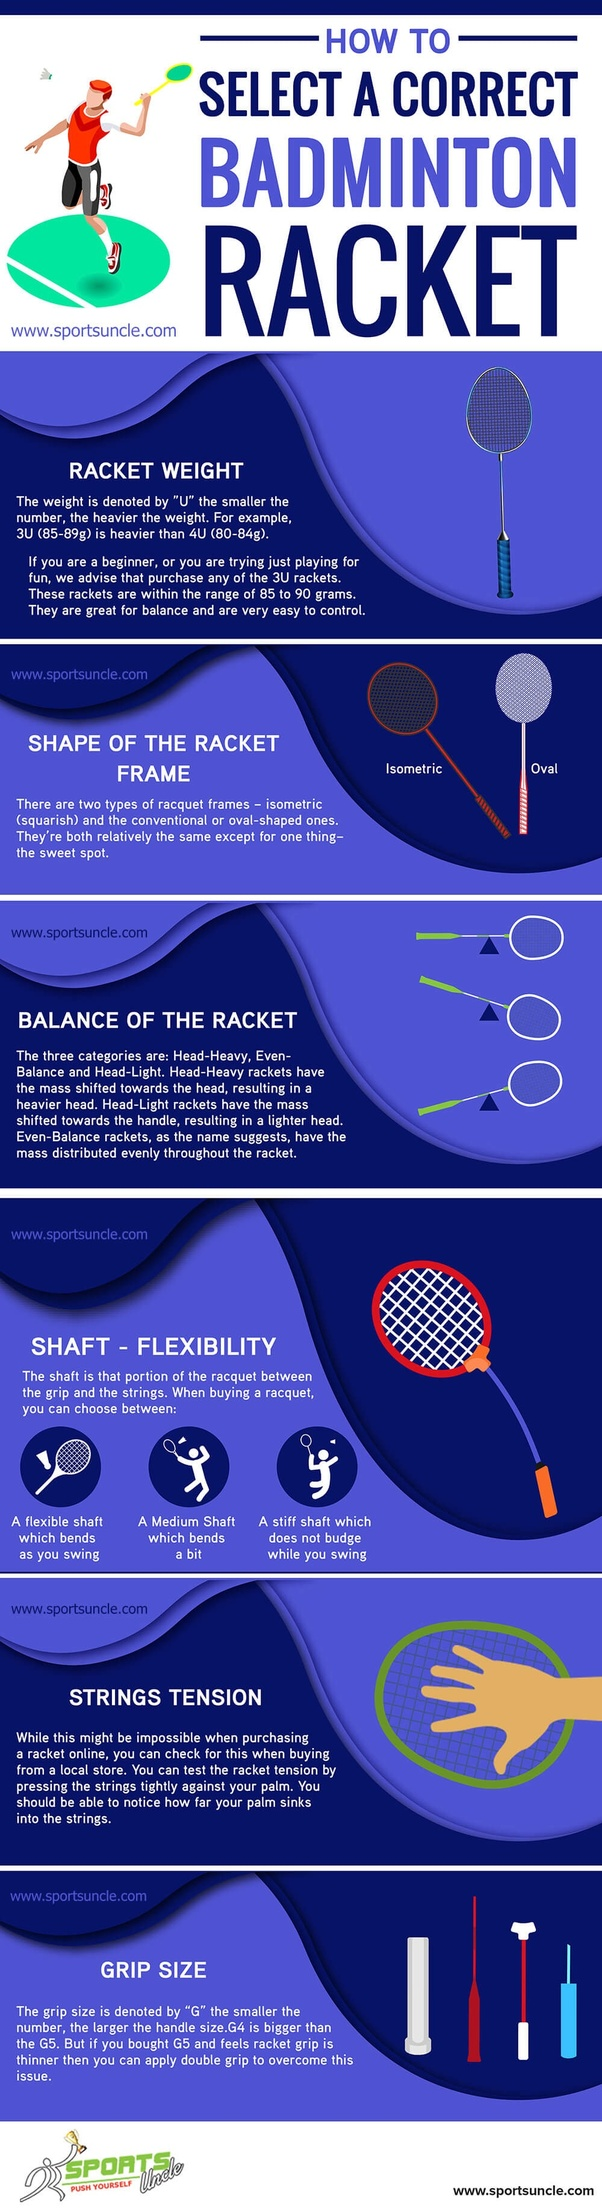 How To Choose A Good Badminton Racket Any Recommendations What